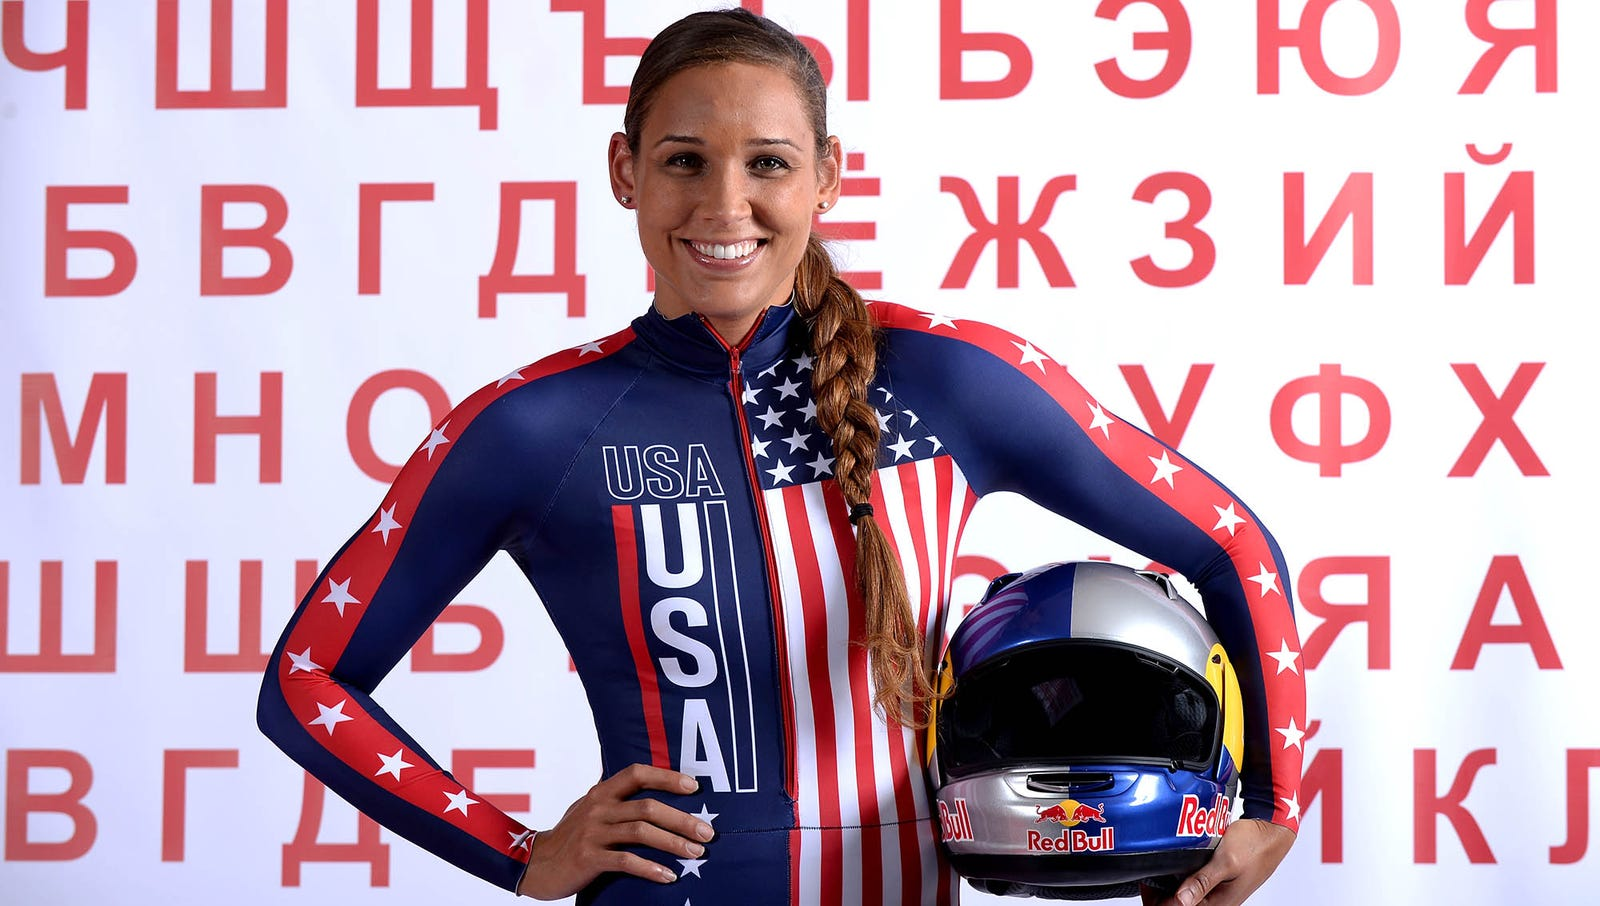 Lolo Jones Becomes First American To Be Objectified In Both Winter And Summer Events